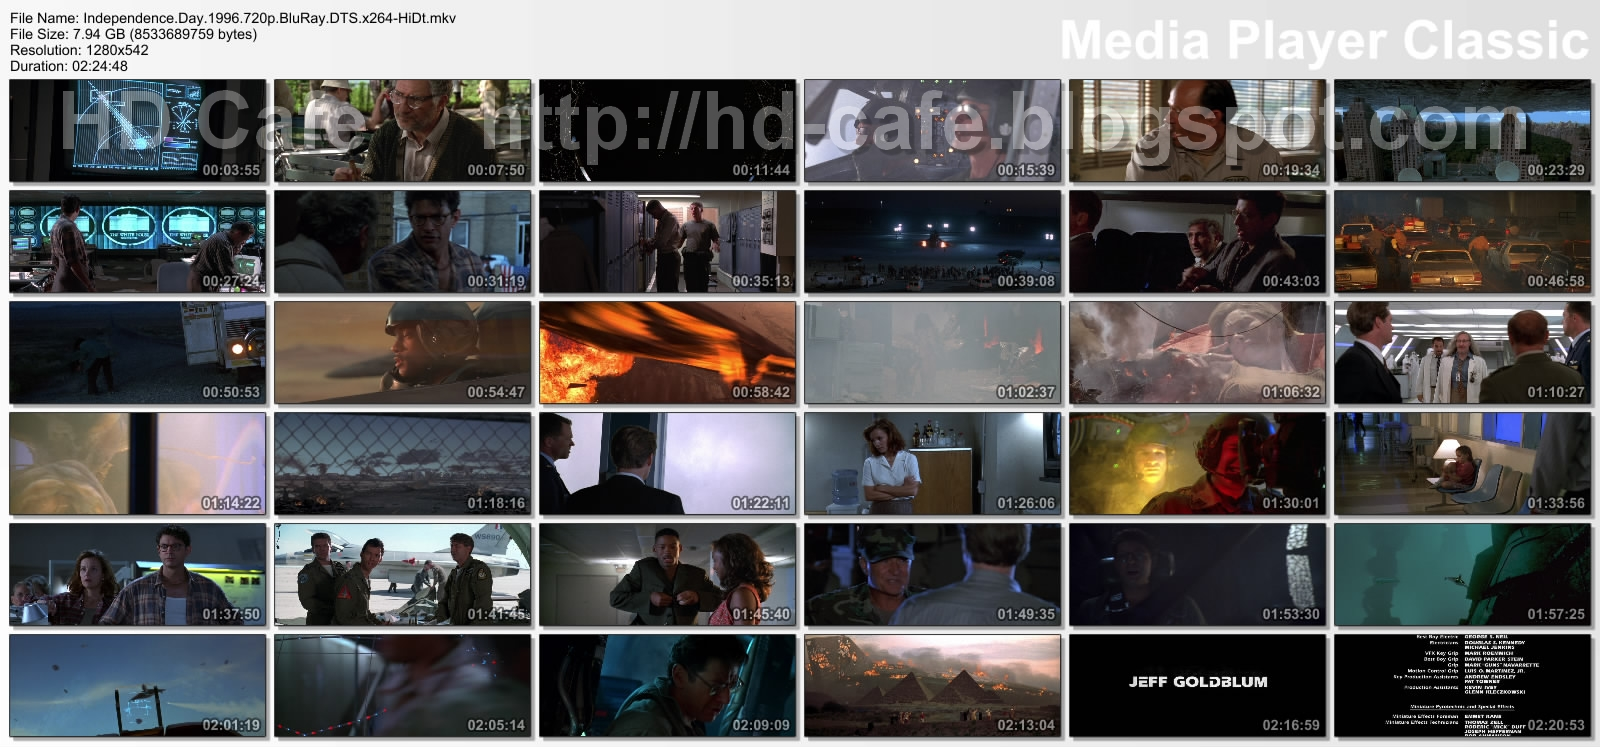 independence day 1996 full movie download 720p